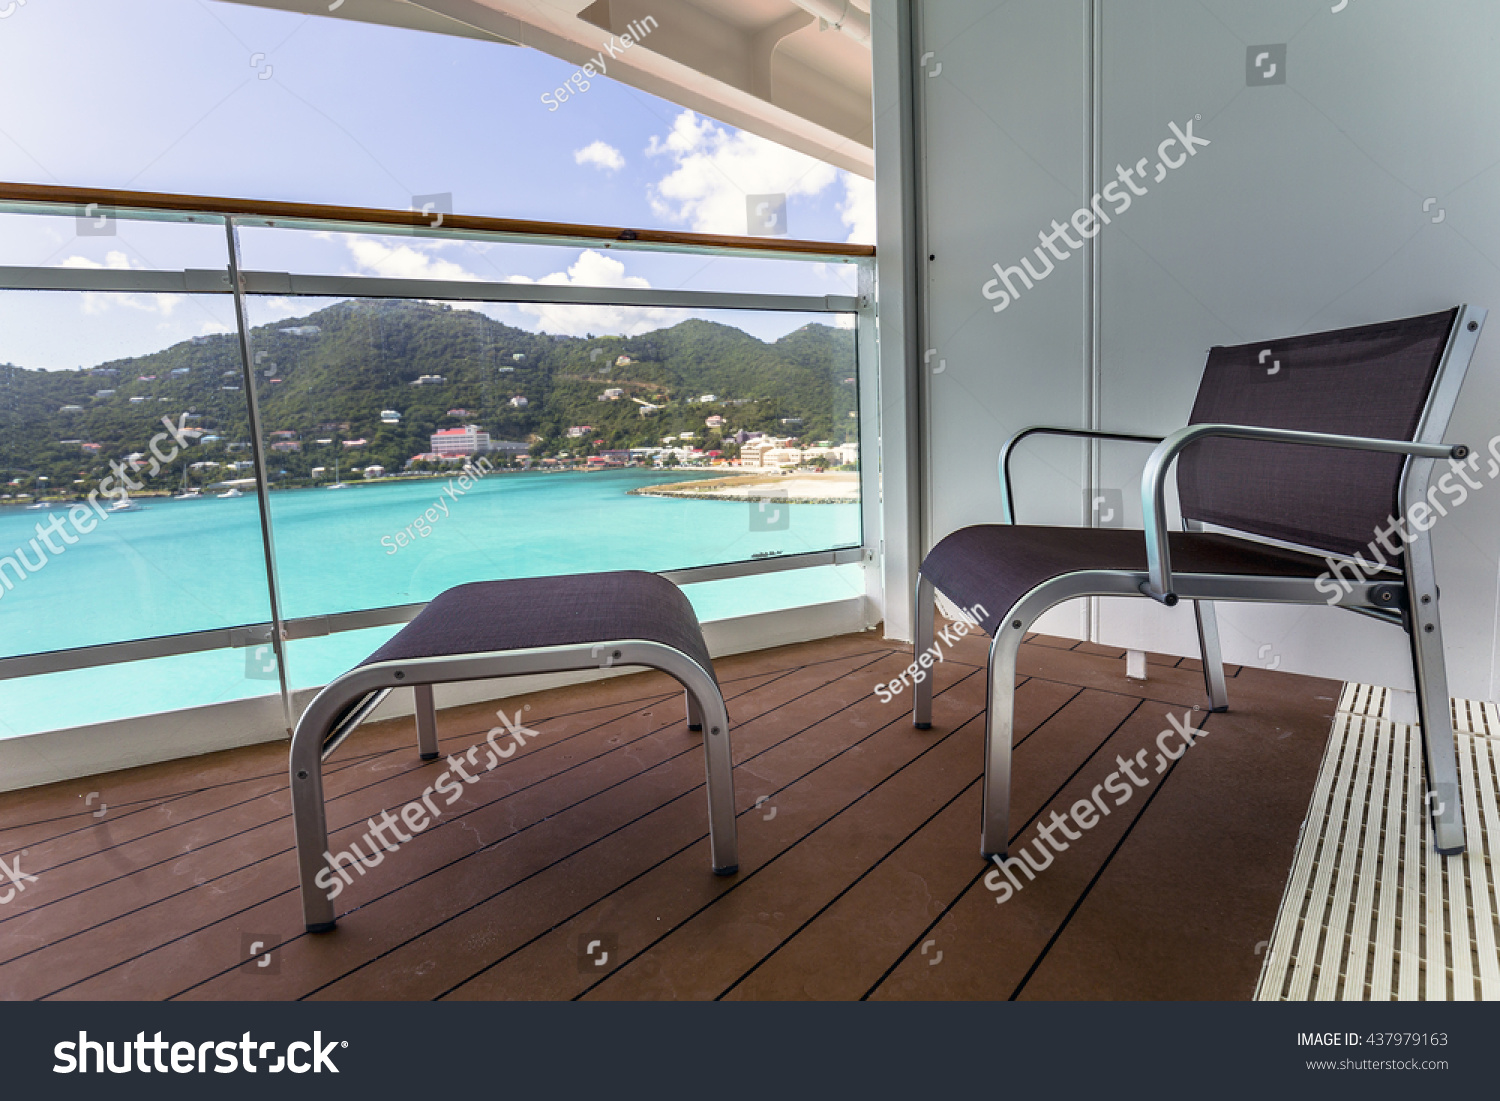 Balcony view on the cruise ship stock photo 437979163 for Cruise ship balcony view